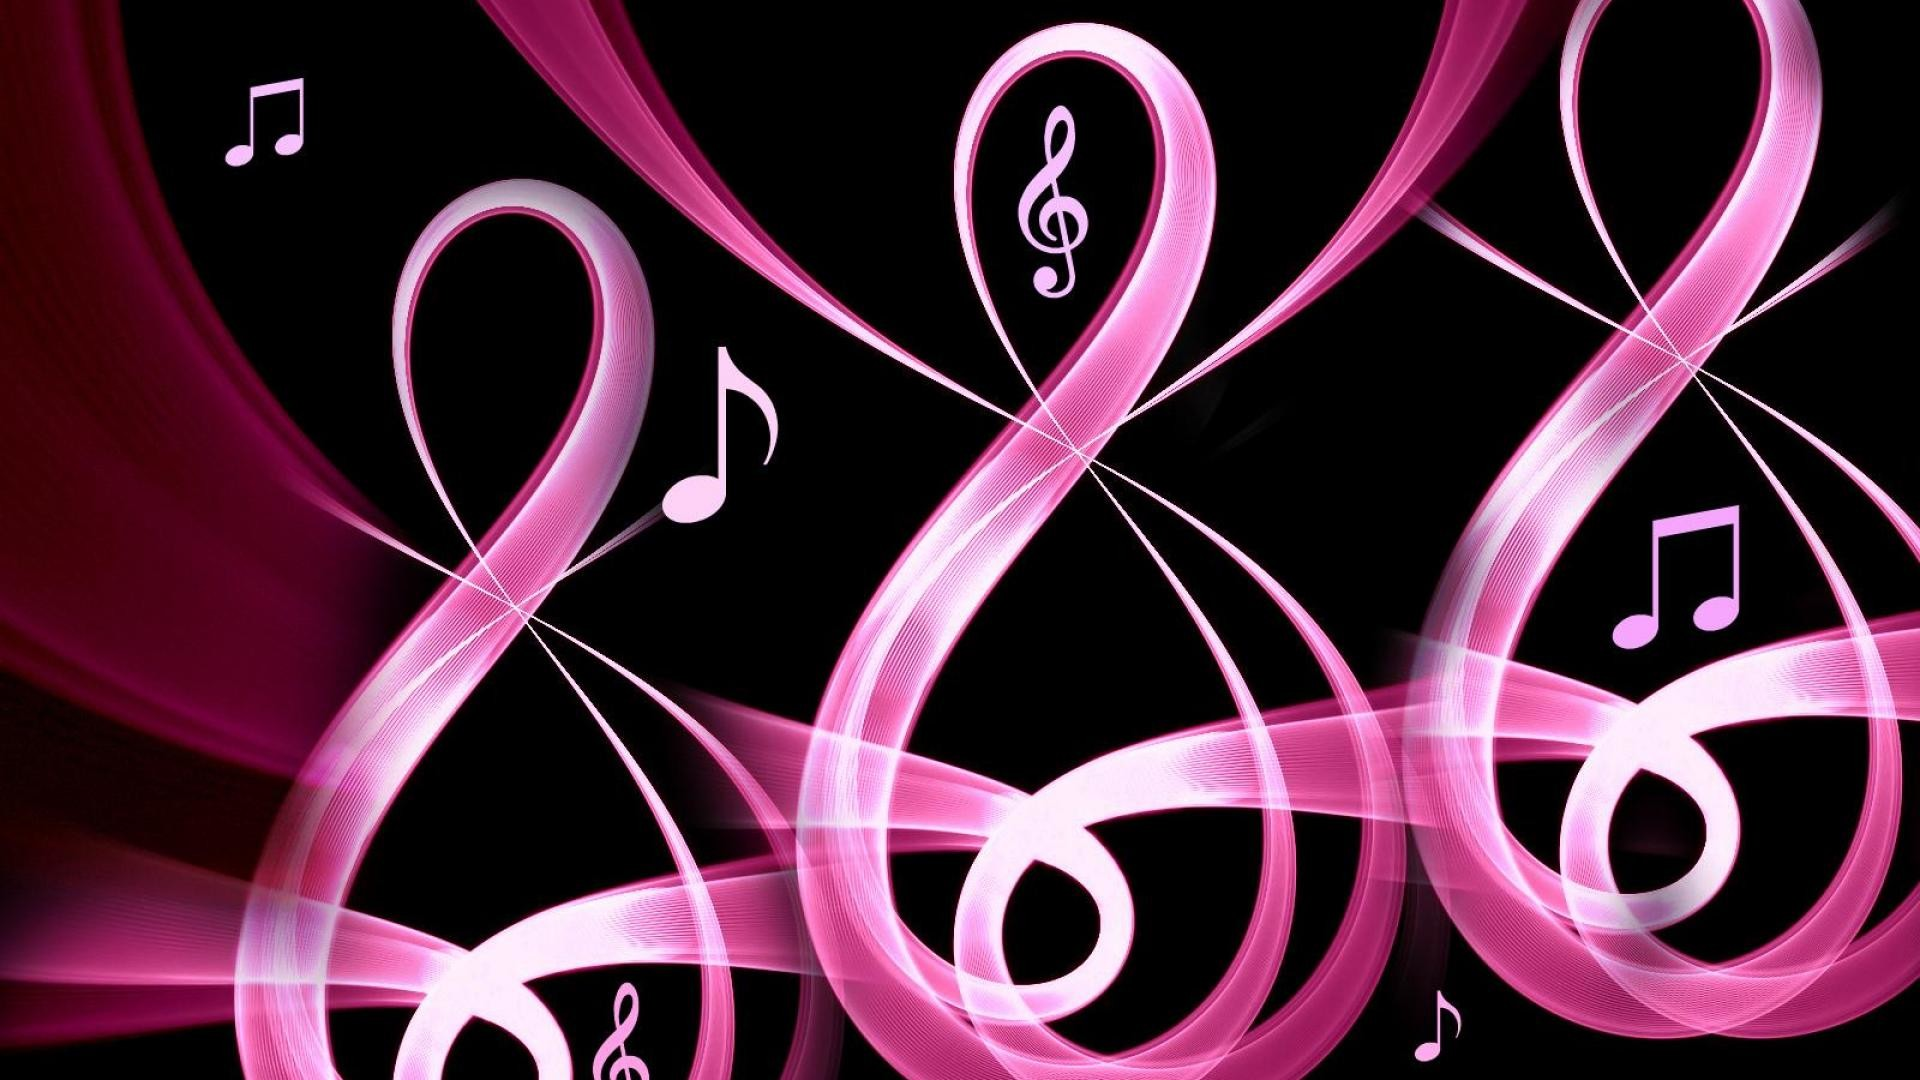 954981-pink-music-wallpaper-1920x1080-laptop.jpg